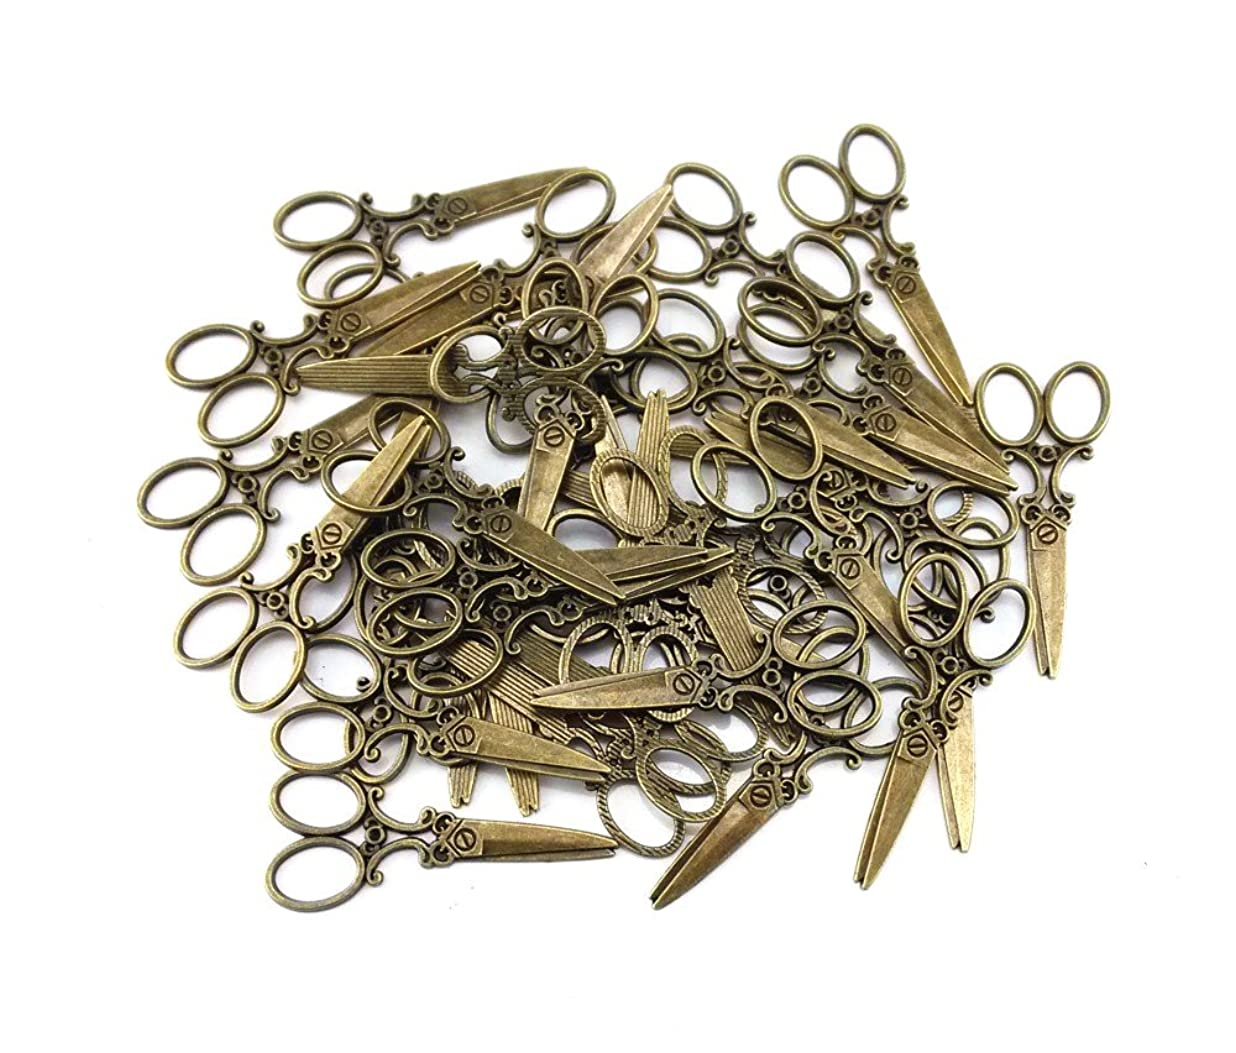 yueton 40pcs Vintage Scissors Shape Metal Charms Pendant DIY Craft Jewelry Making Accessory (Bronze) zhwcaeyq0